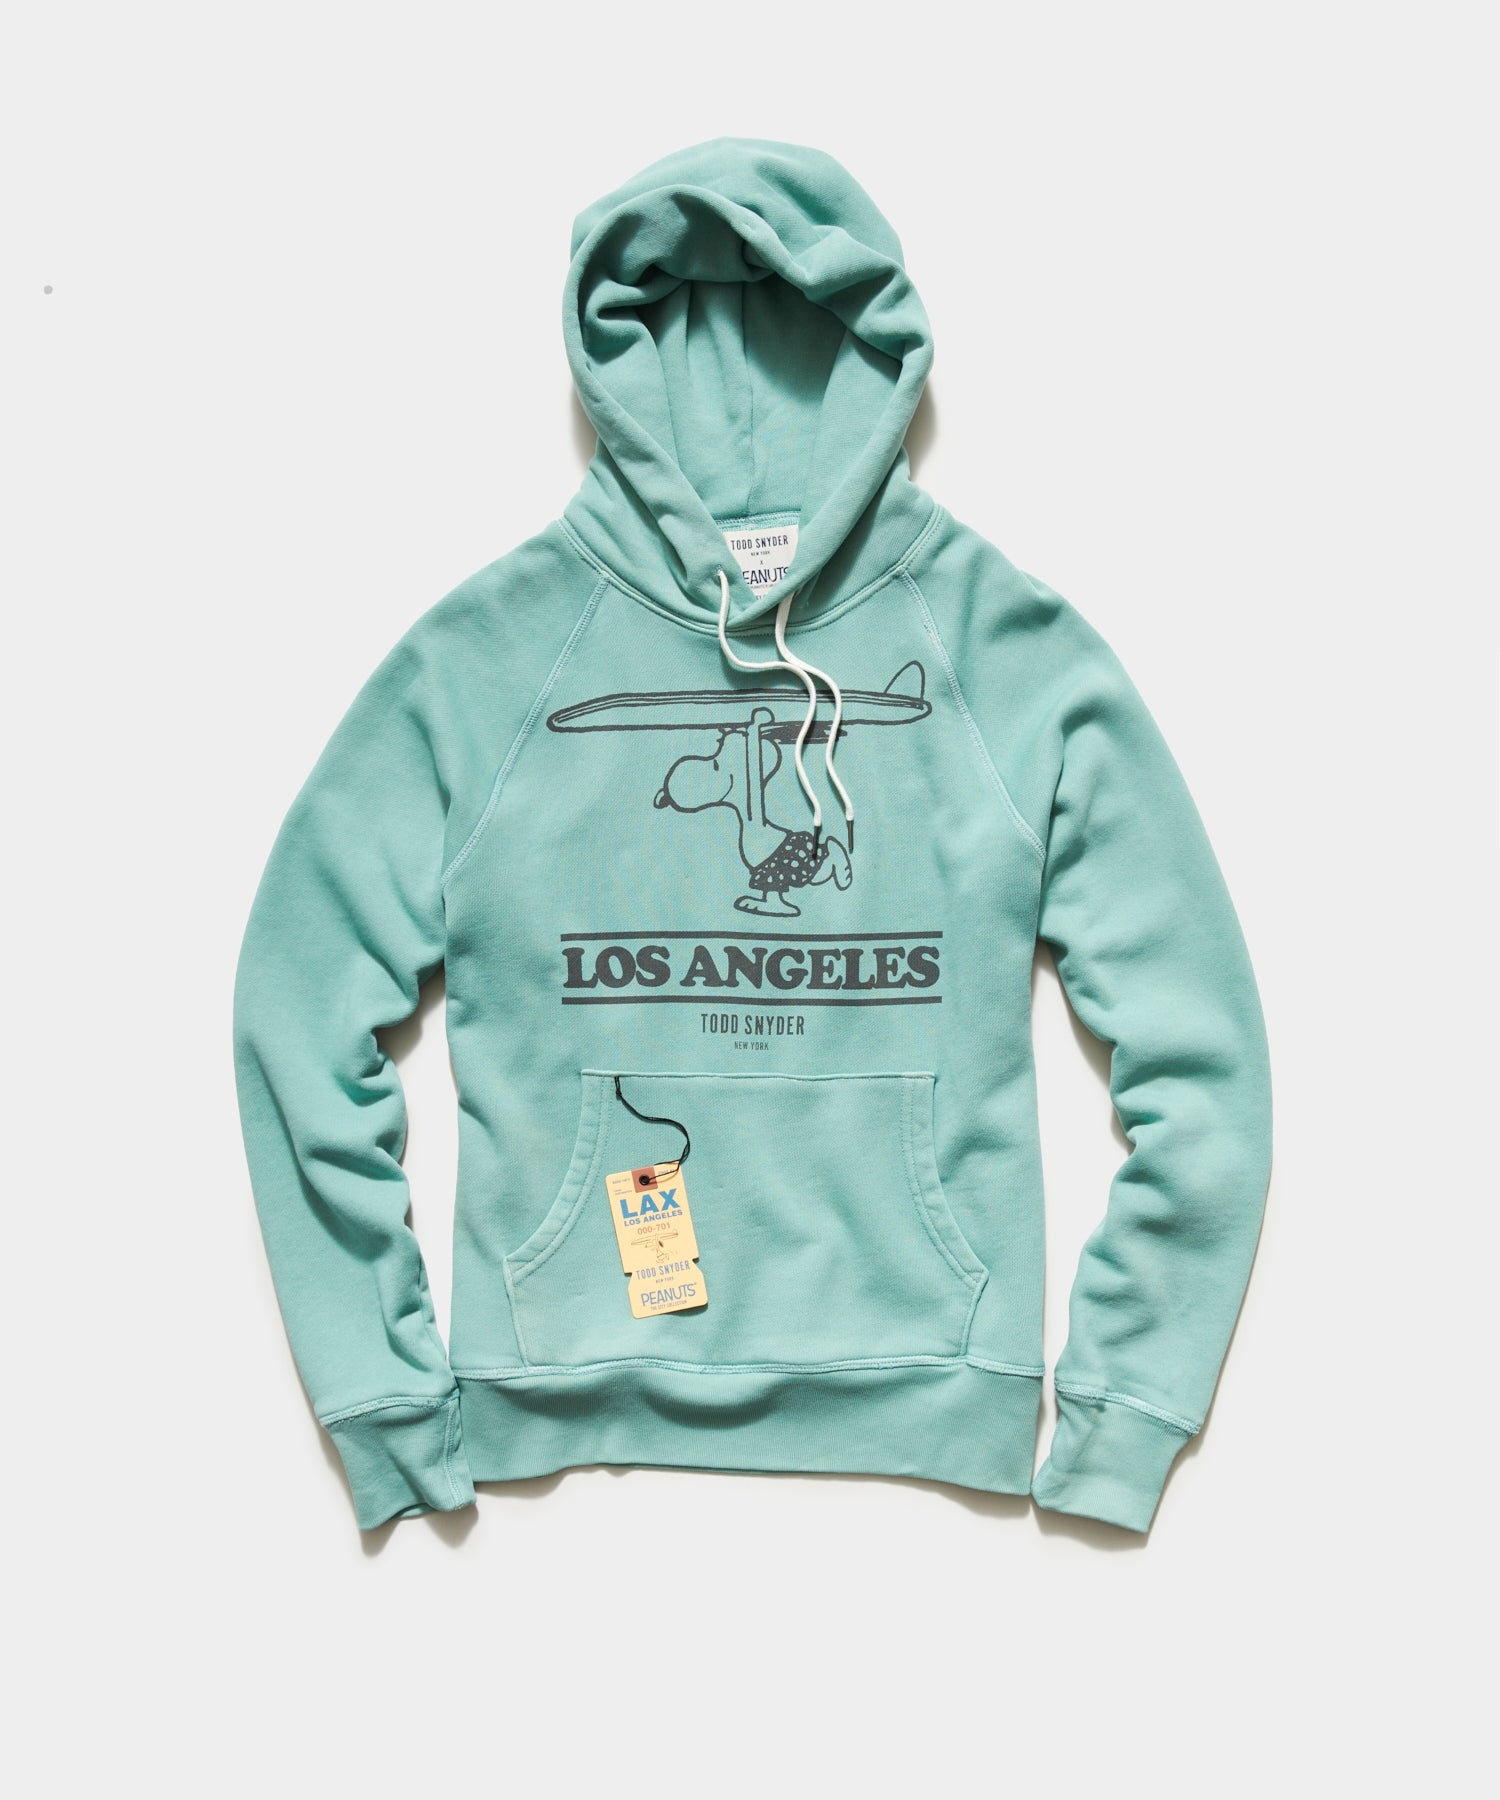 Peanuts City Collection Los Angeles Hoodie in Aqua